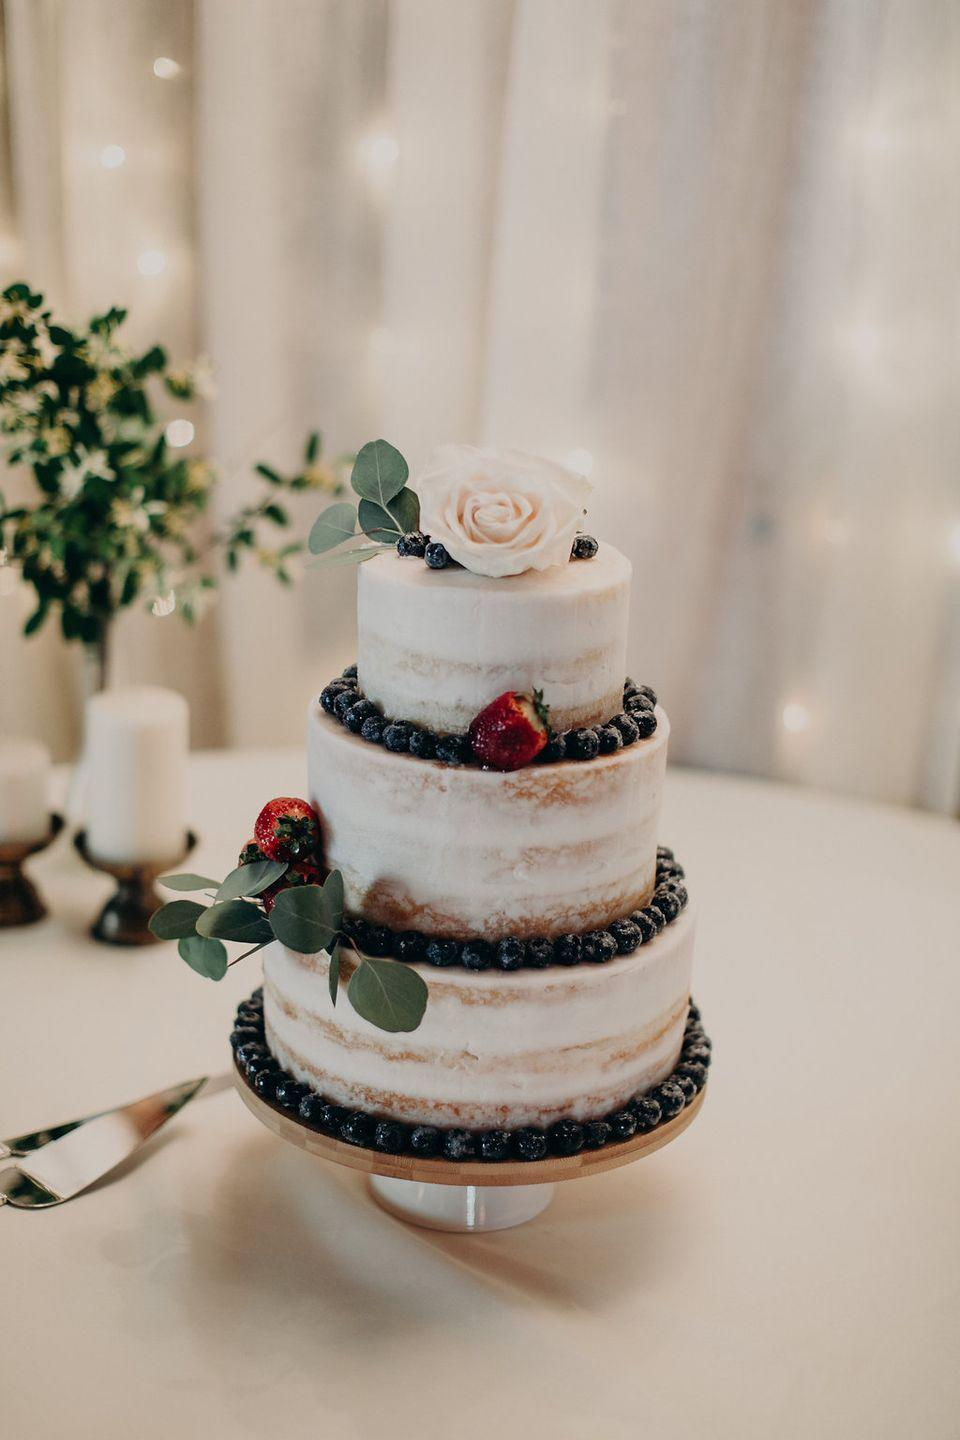 """<p>Who says berries are only for summer? Blueberries and strawberries look decadent on this fall wedding cake topped with <a href=""""https://www.fiftyflowers.com/"""" rel=""""nofollow noopener"""" target=""""_blank"""" data-ylk=""""slk:florals"""" class=""""link rapid-noclick-resp"""">florals</a>.</p>"""